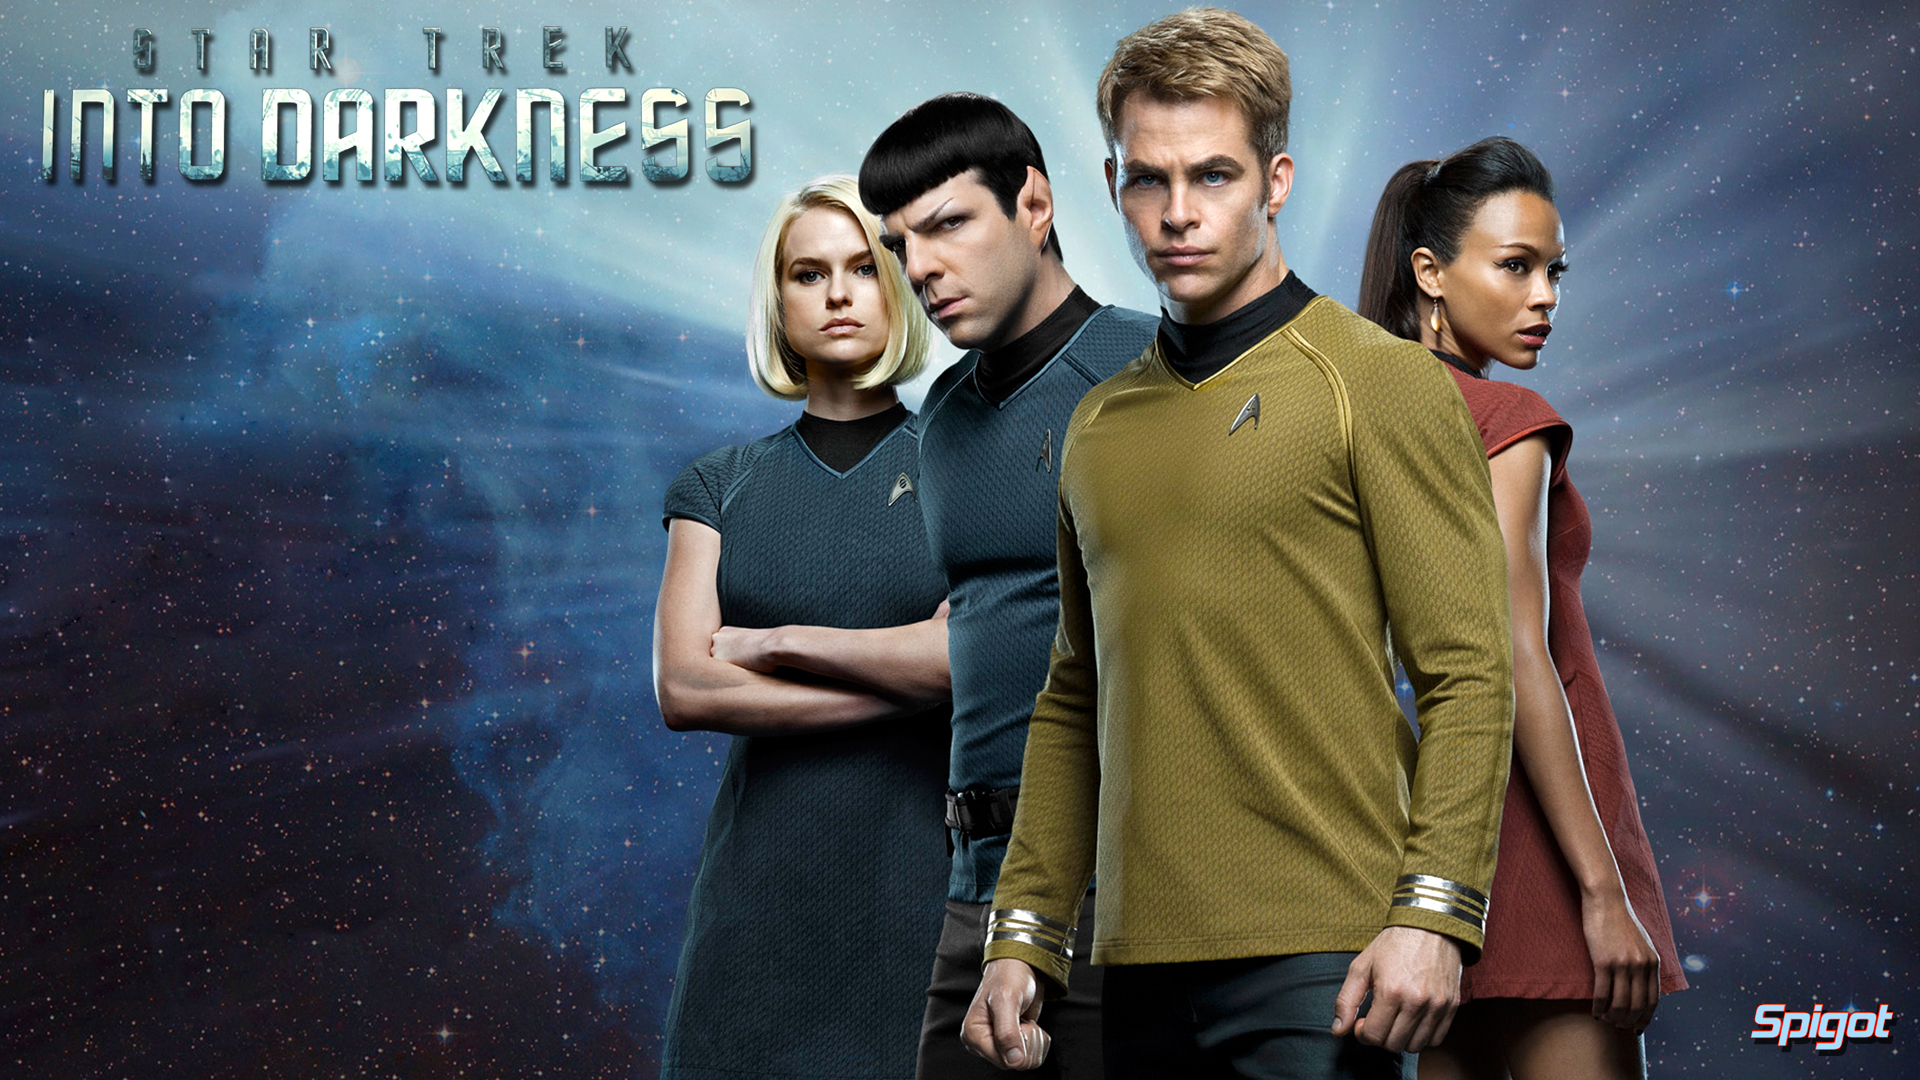 Star Trek Into Darkness Wallpapers: Star Trek Into Darkness